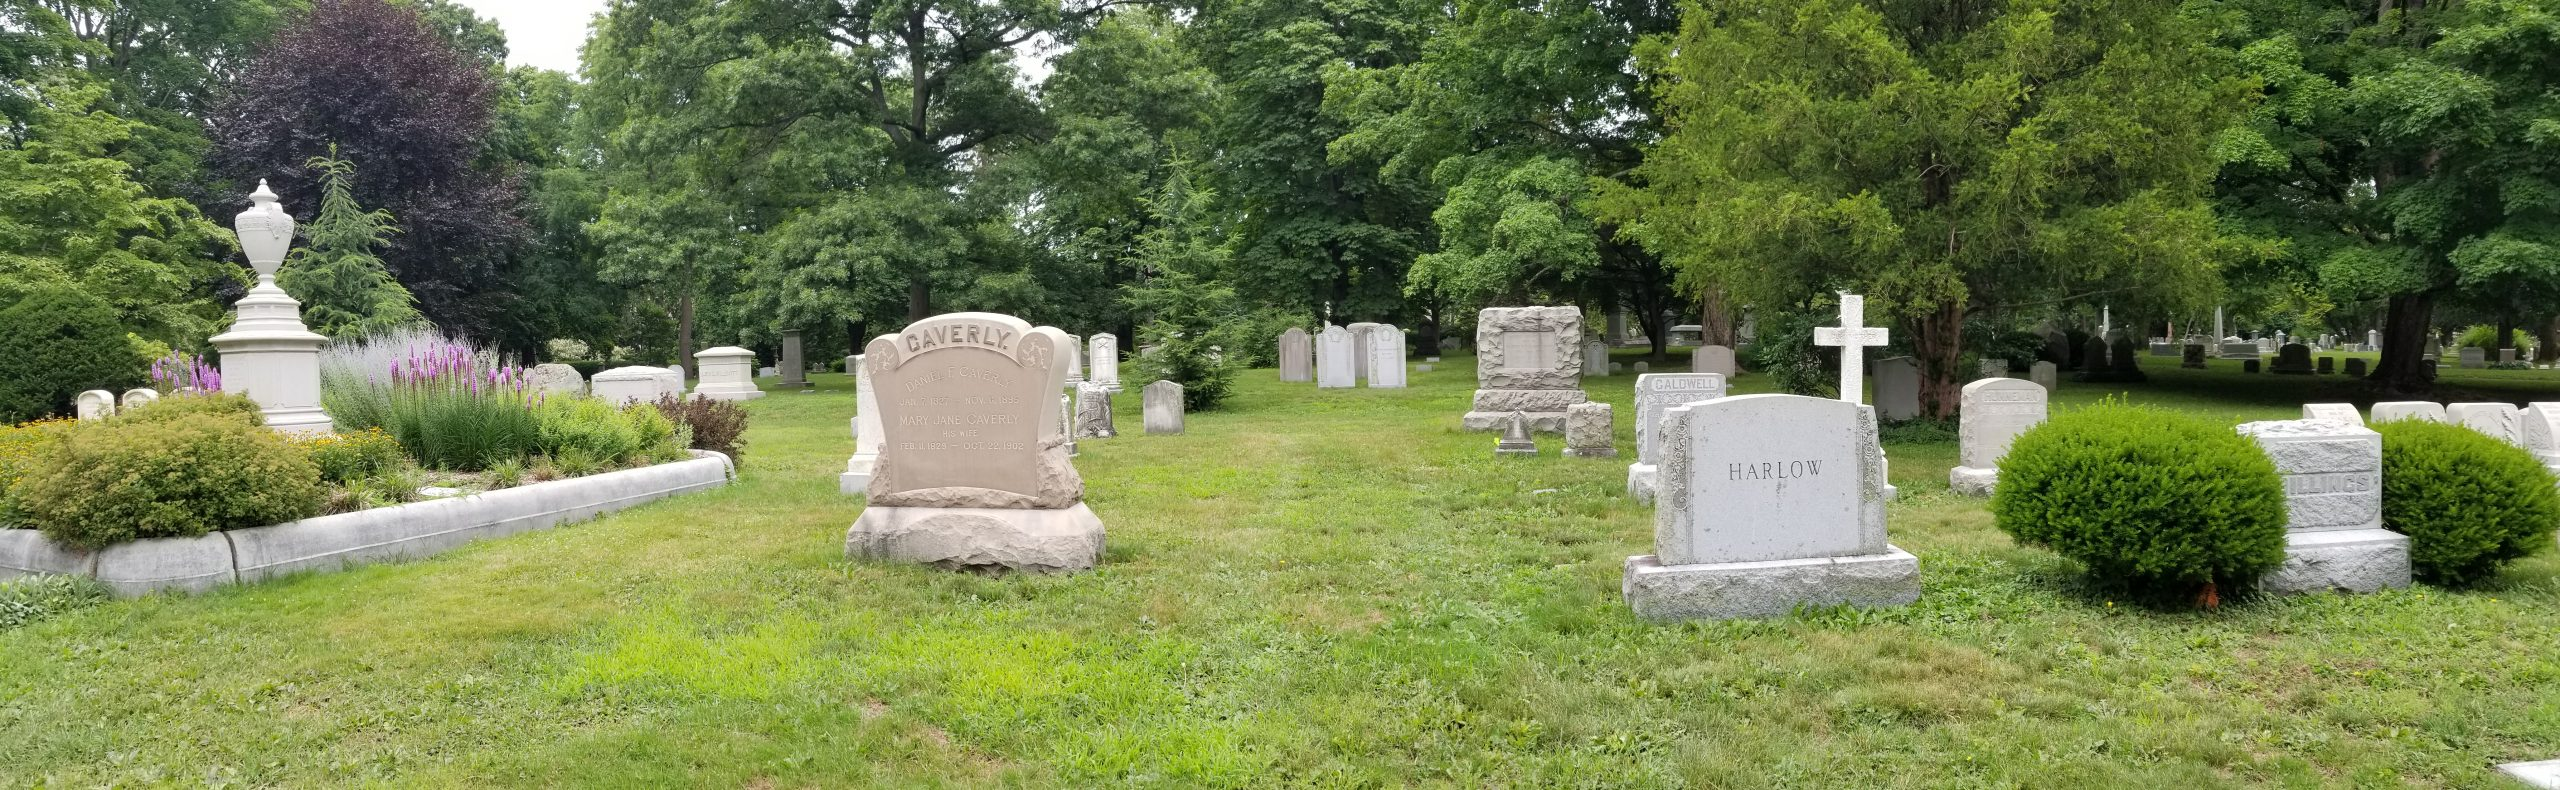 A flat grassy area populated with large, historic family lots. Sections of open space, about 3 feet in width separate one lot from another and provide space for new graves.